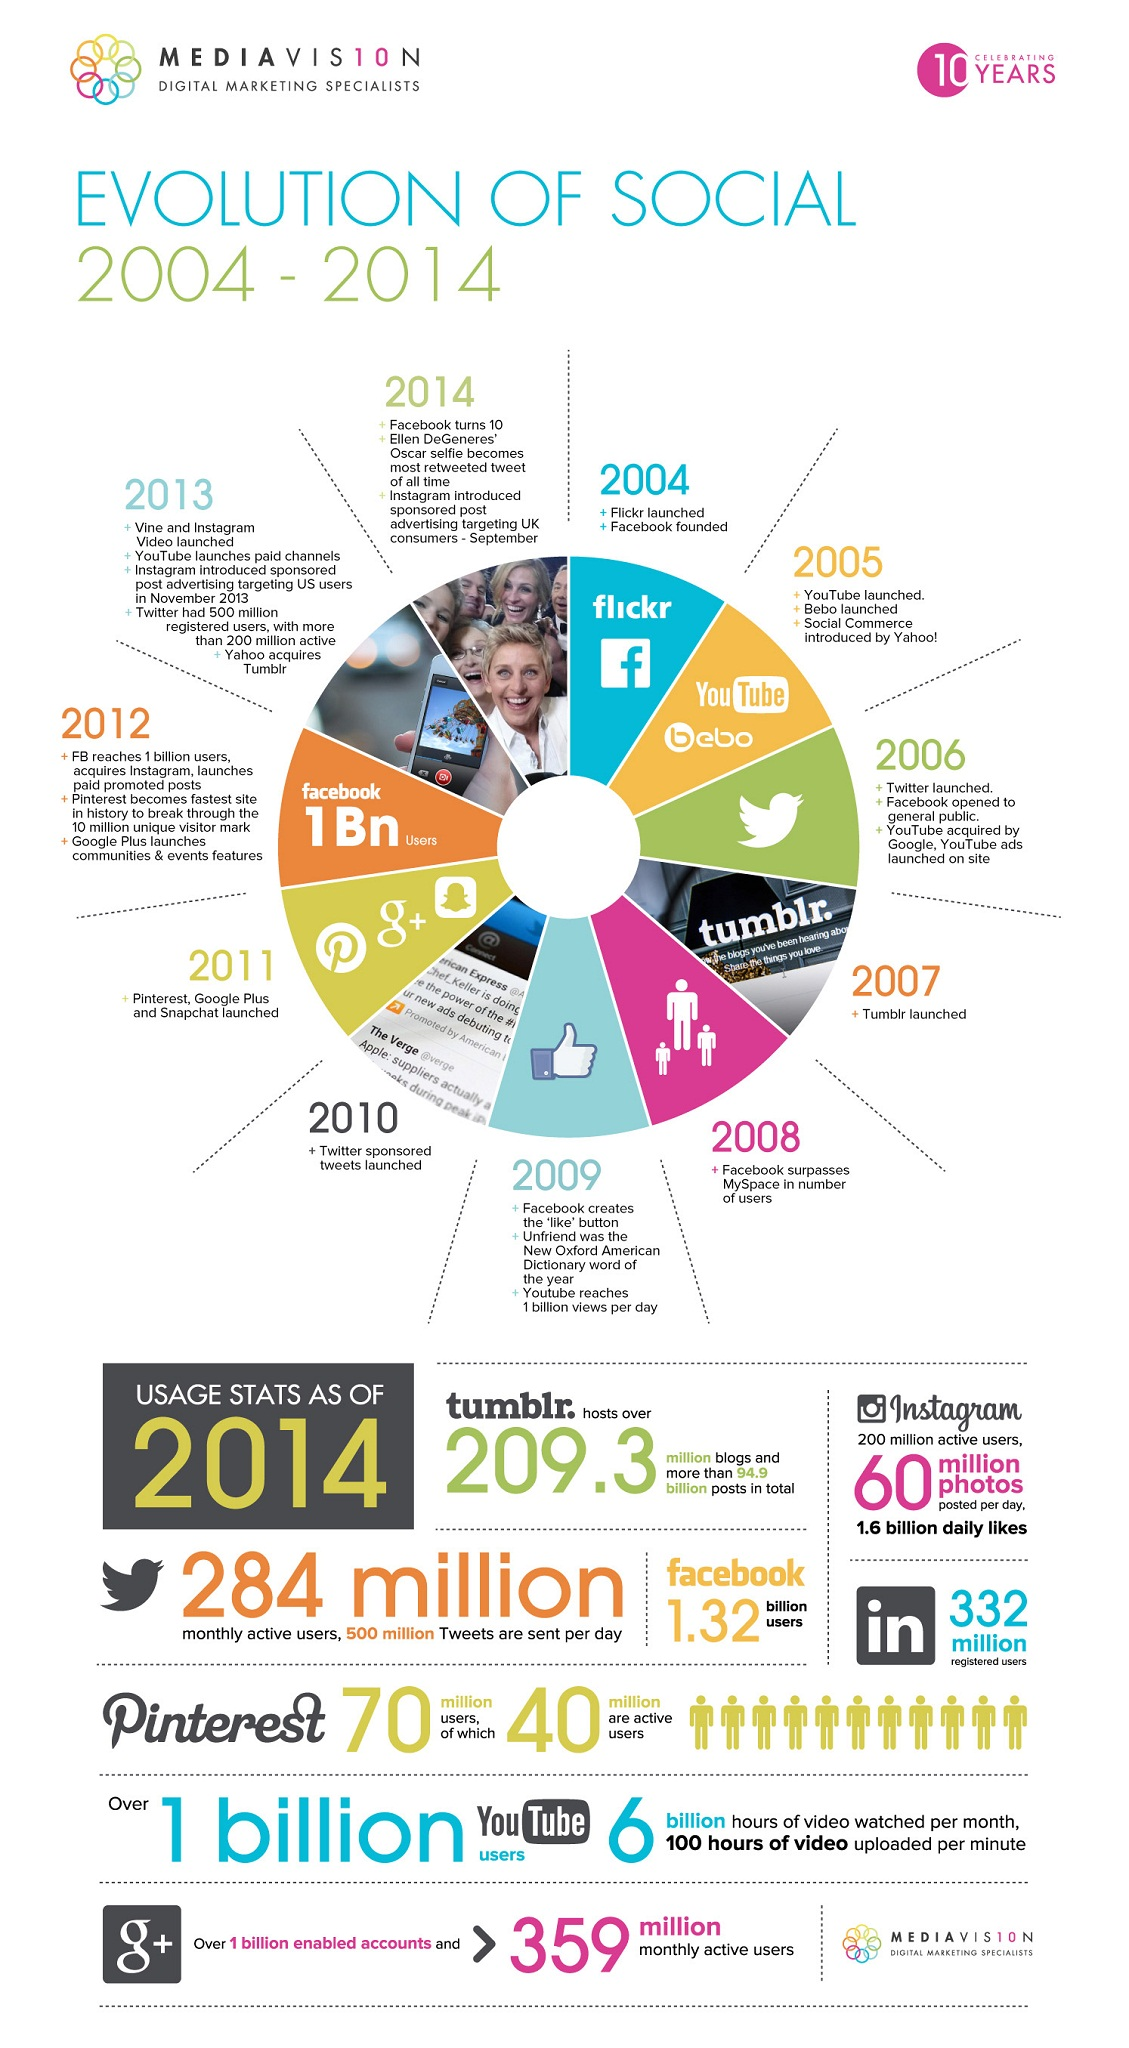 The History of #SocialMedia from 2004 - 2014 - #infographic